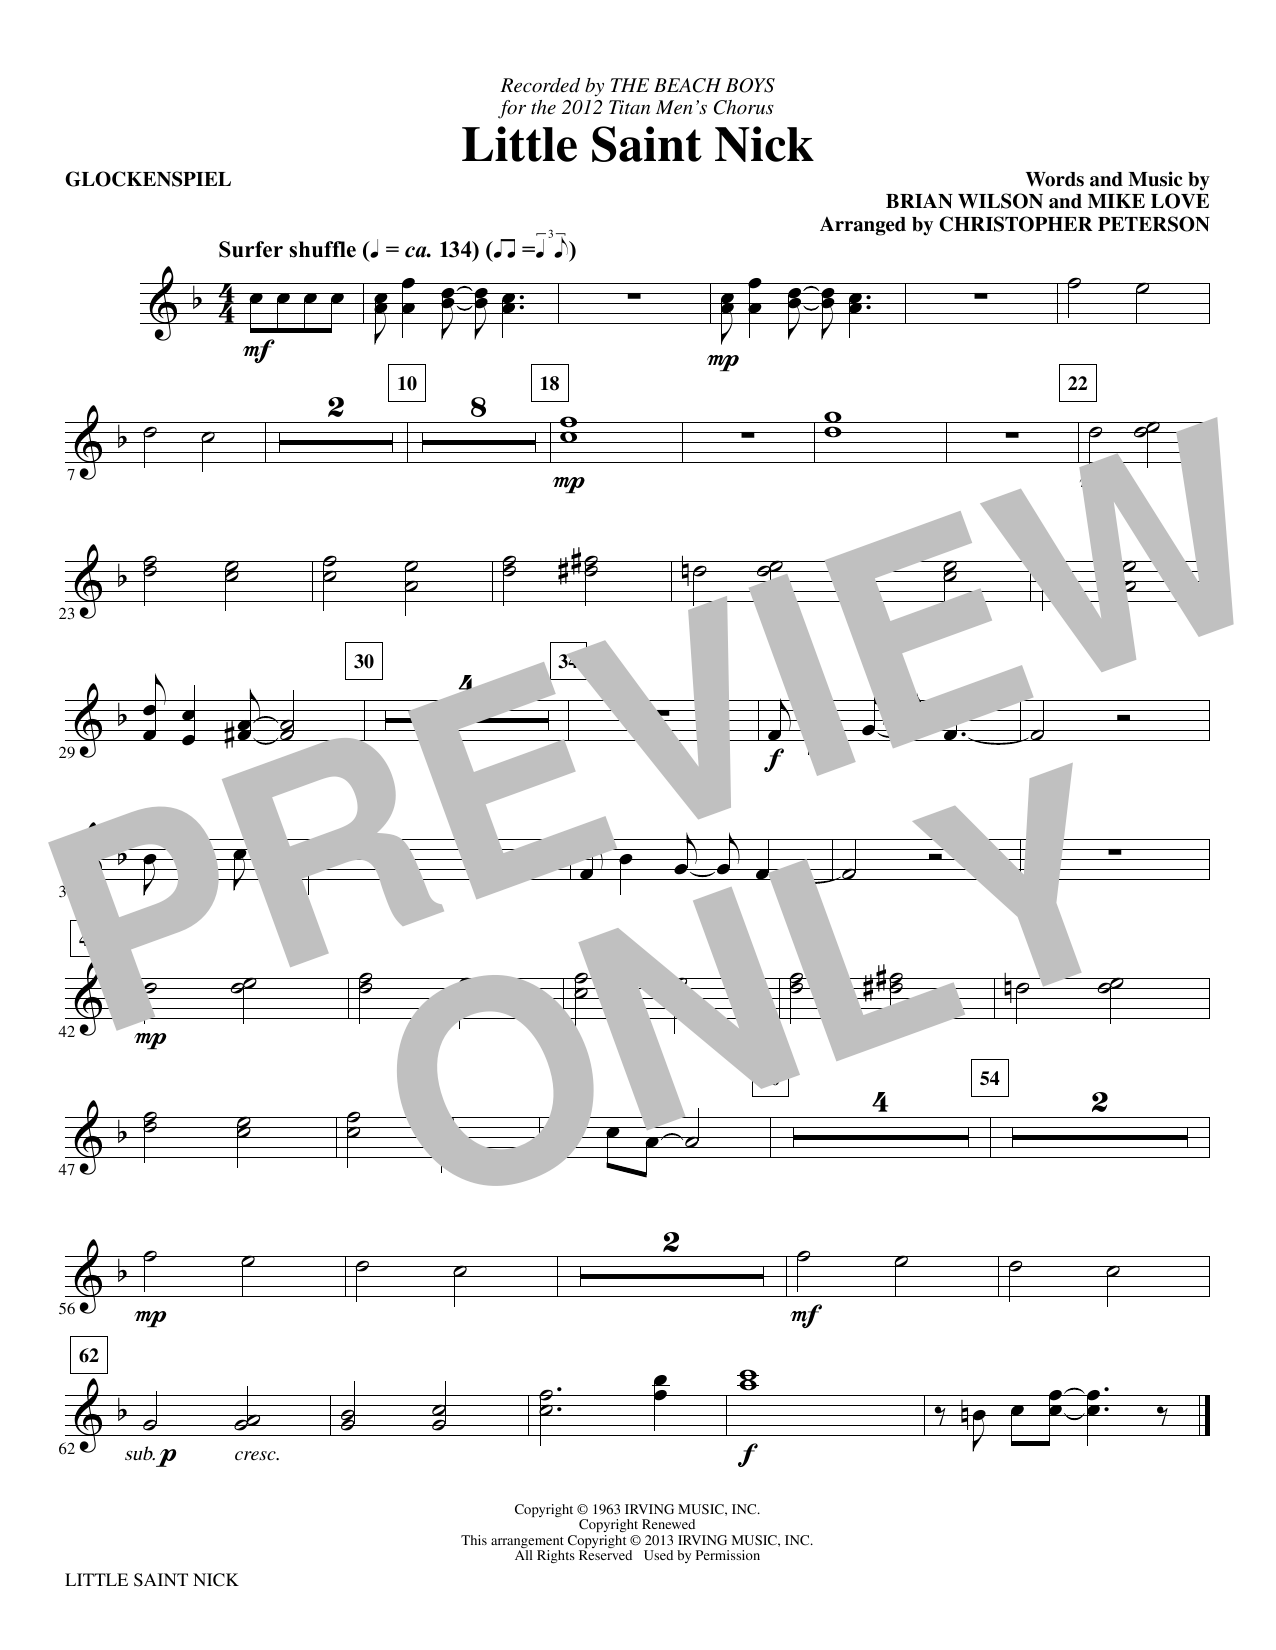 Little Saint Nick (complete set of parts) sheet music for orchestra/band by Christopher Peterson